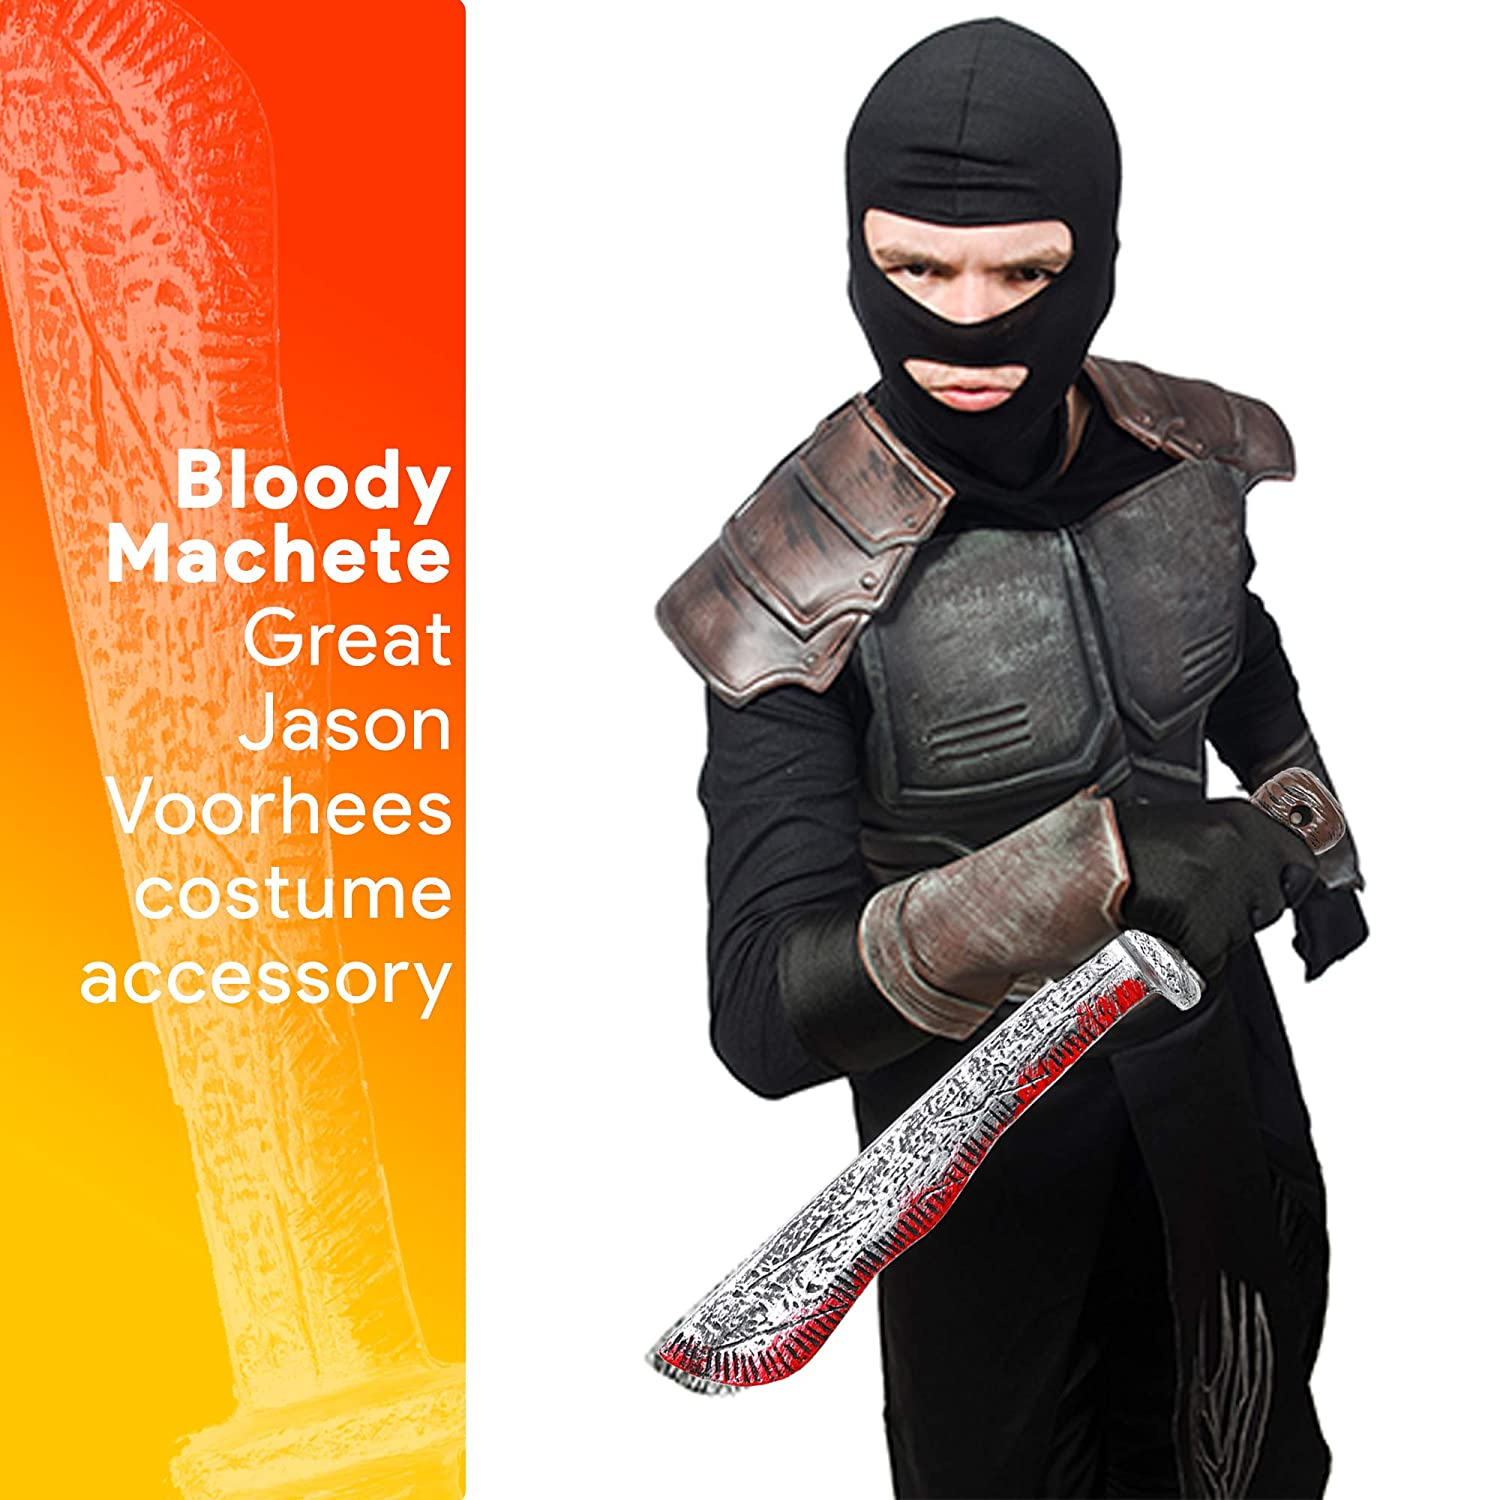 Amazon.com: Skeleteen Bloody Machete Costume Prop - Falso ...